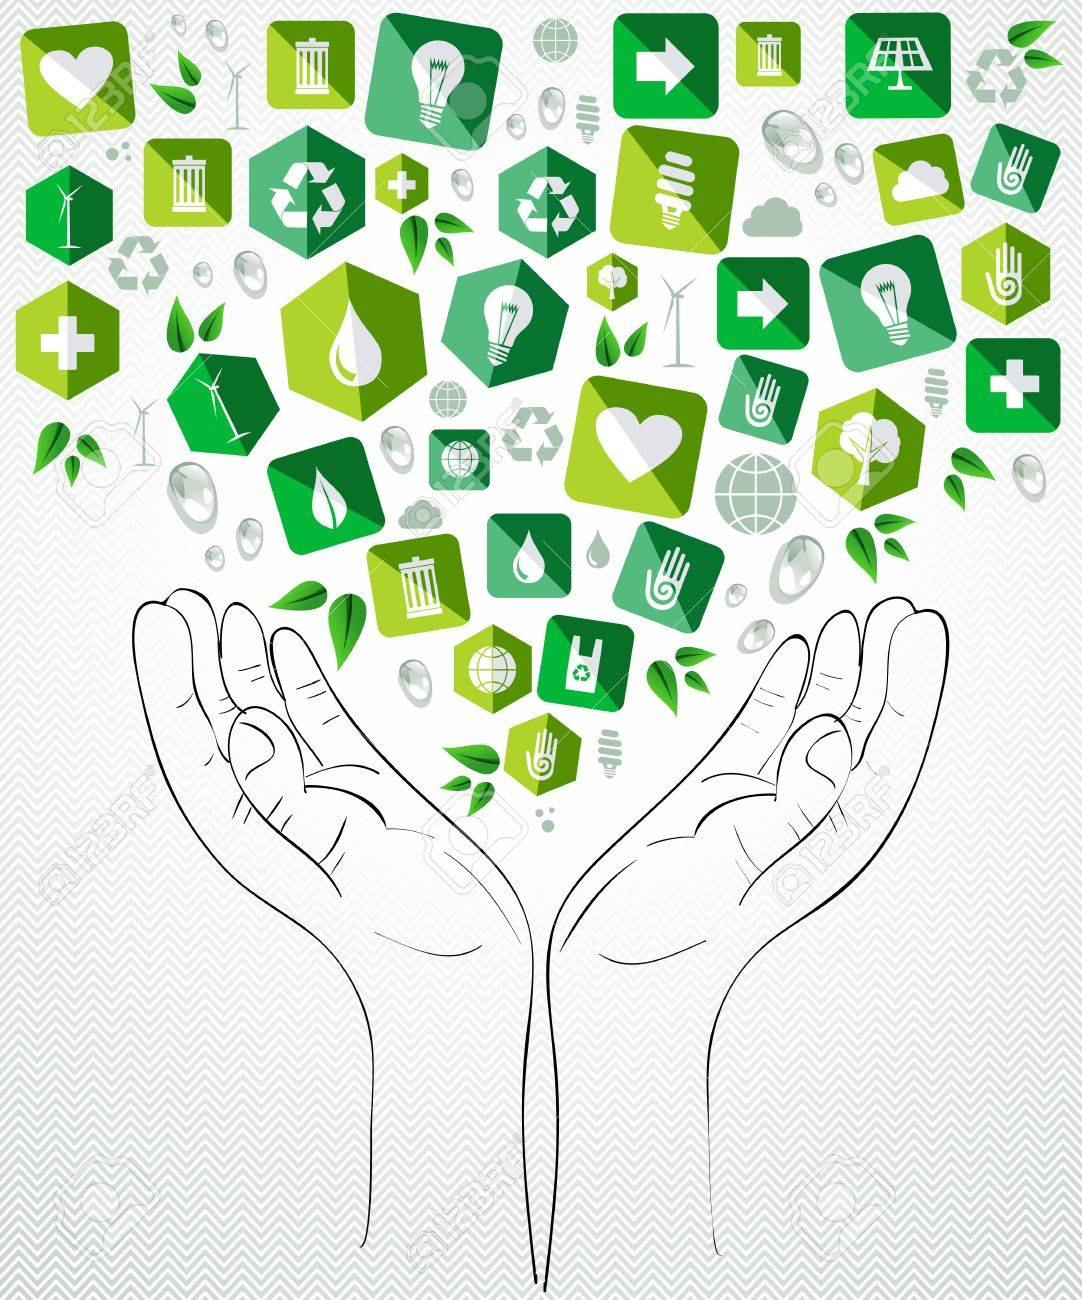 Green icons open hands concept splash. Vector file layered for easy manipulation and custom coloring. Stock Vector - 20608101